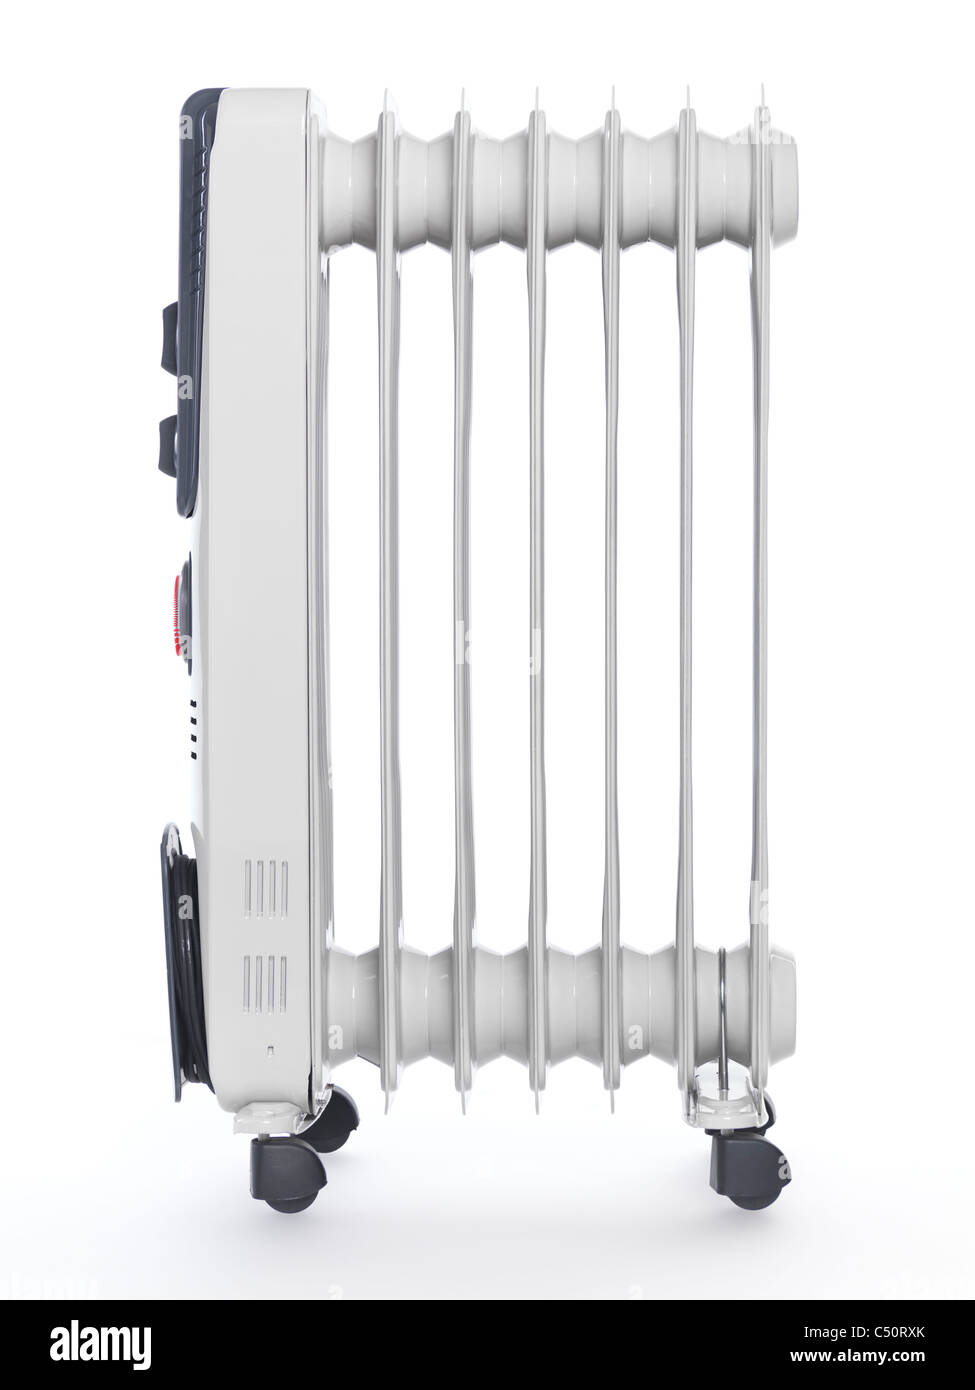 Oil filled air heater. Radiator isolated on white background. - Stock Image